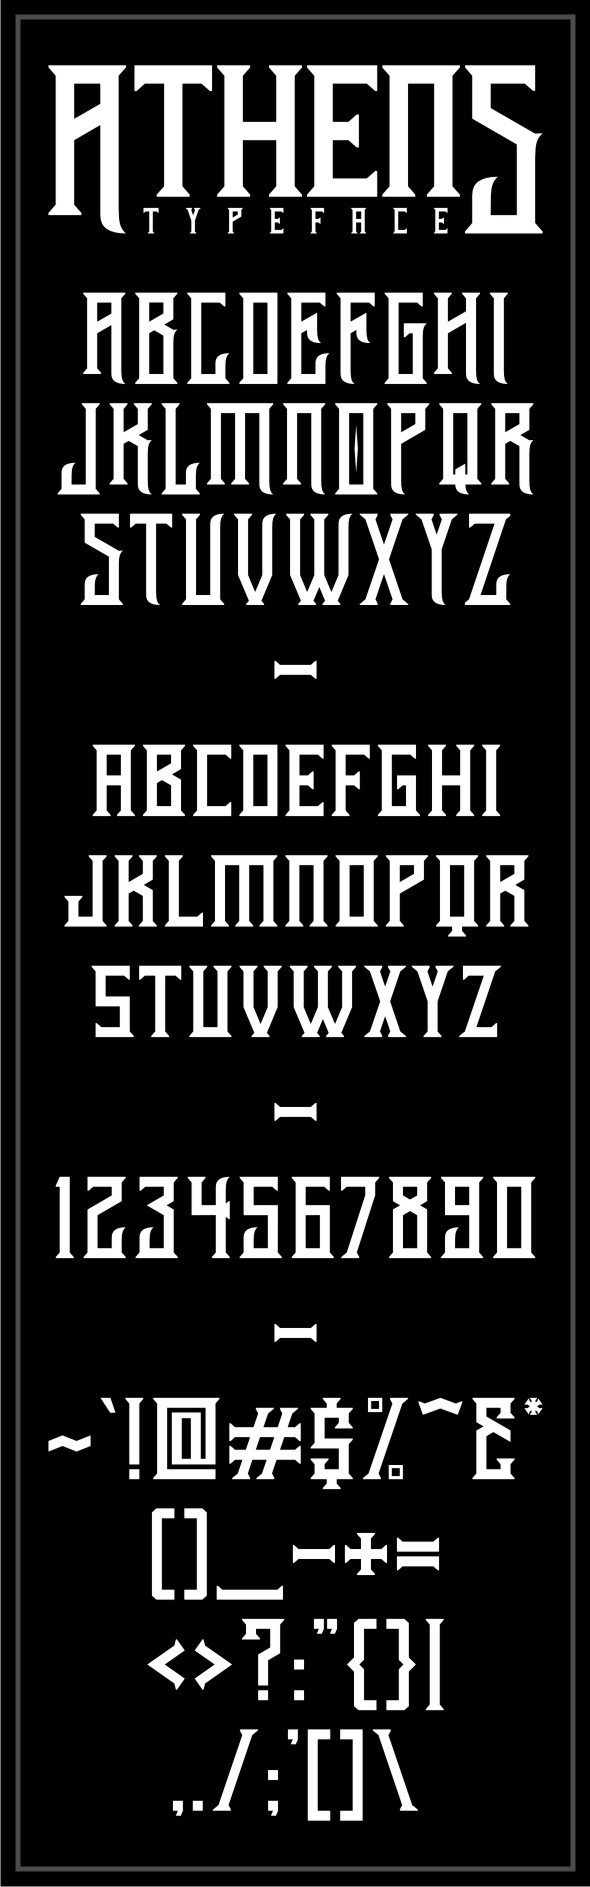 Athens Typeface - Gothic Decorative